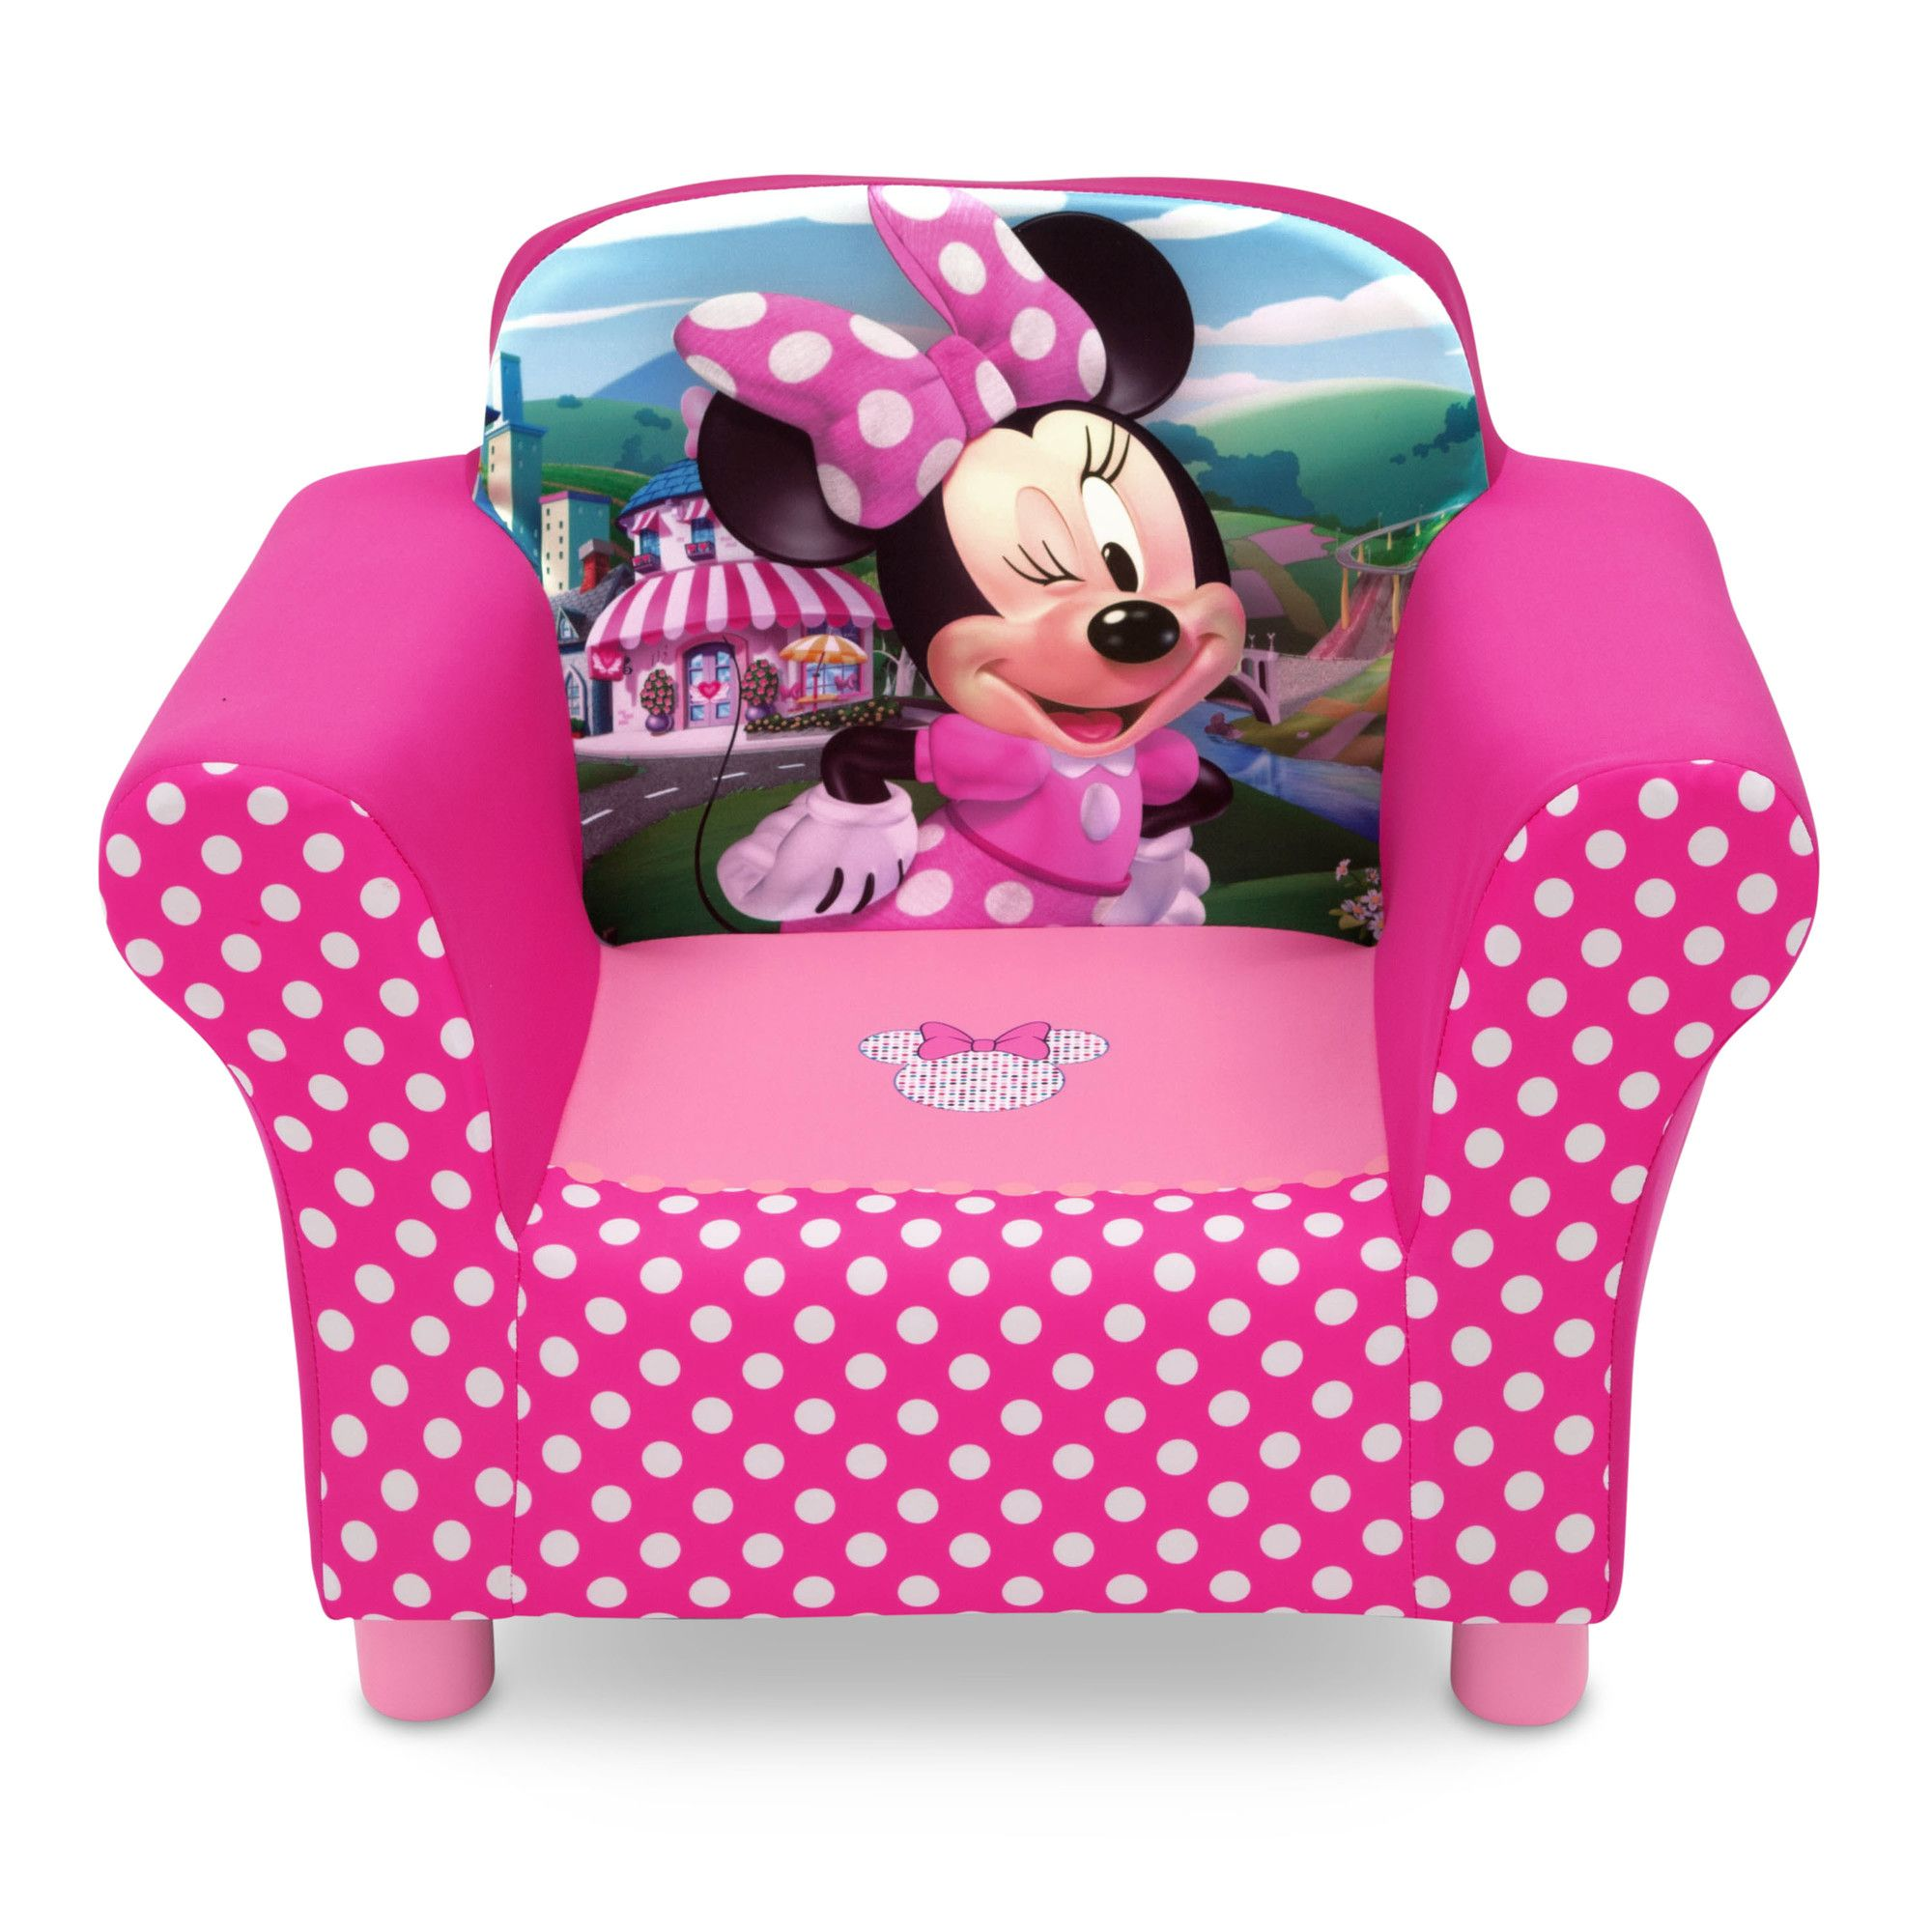 Disney Minnie Mouse Kids Chair Toddler Chair Kids Bedroom Furniture Upholstered Chairs